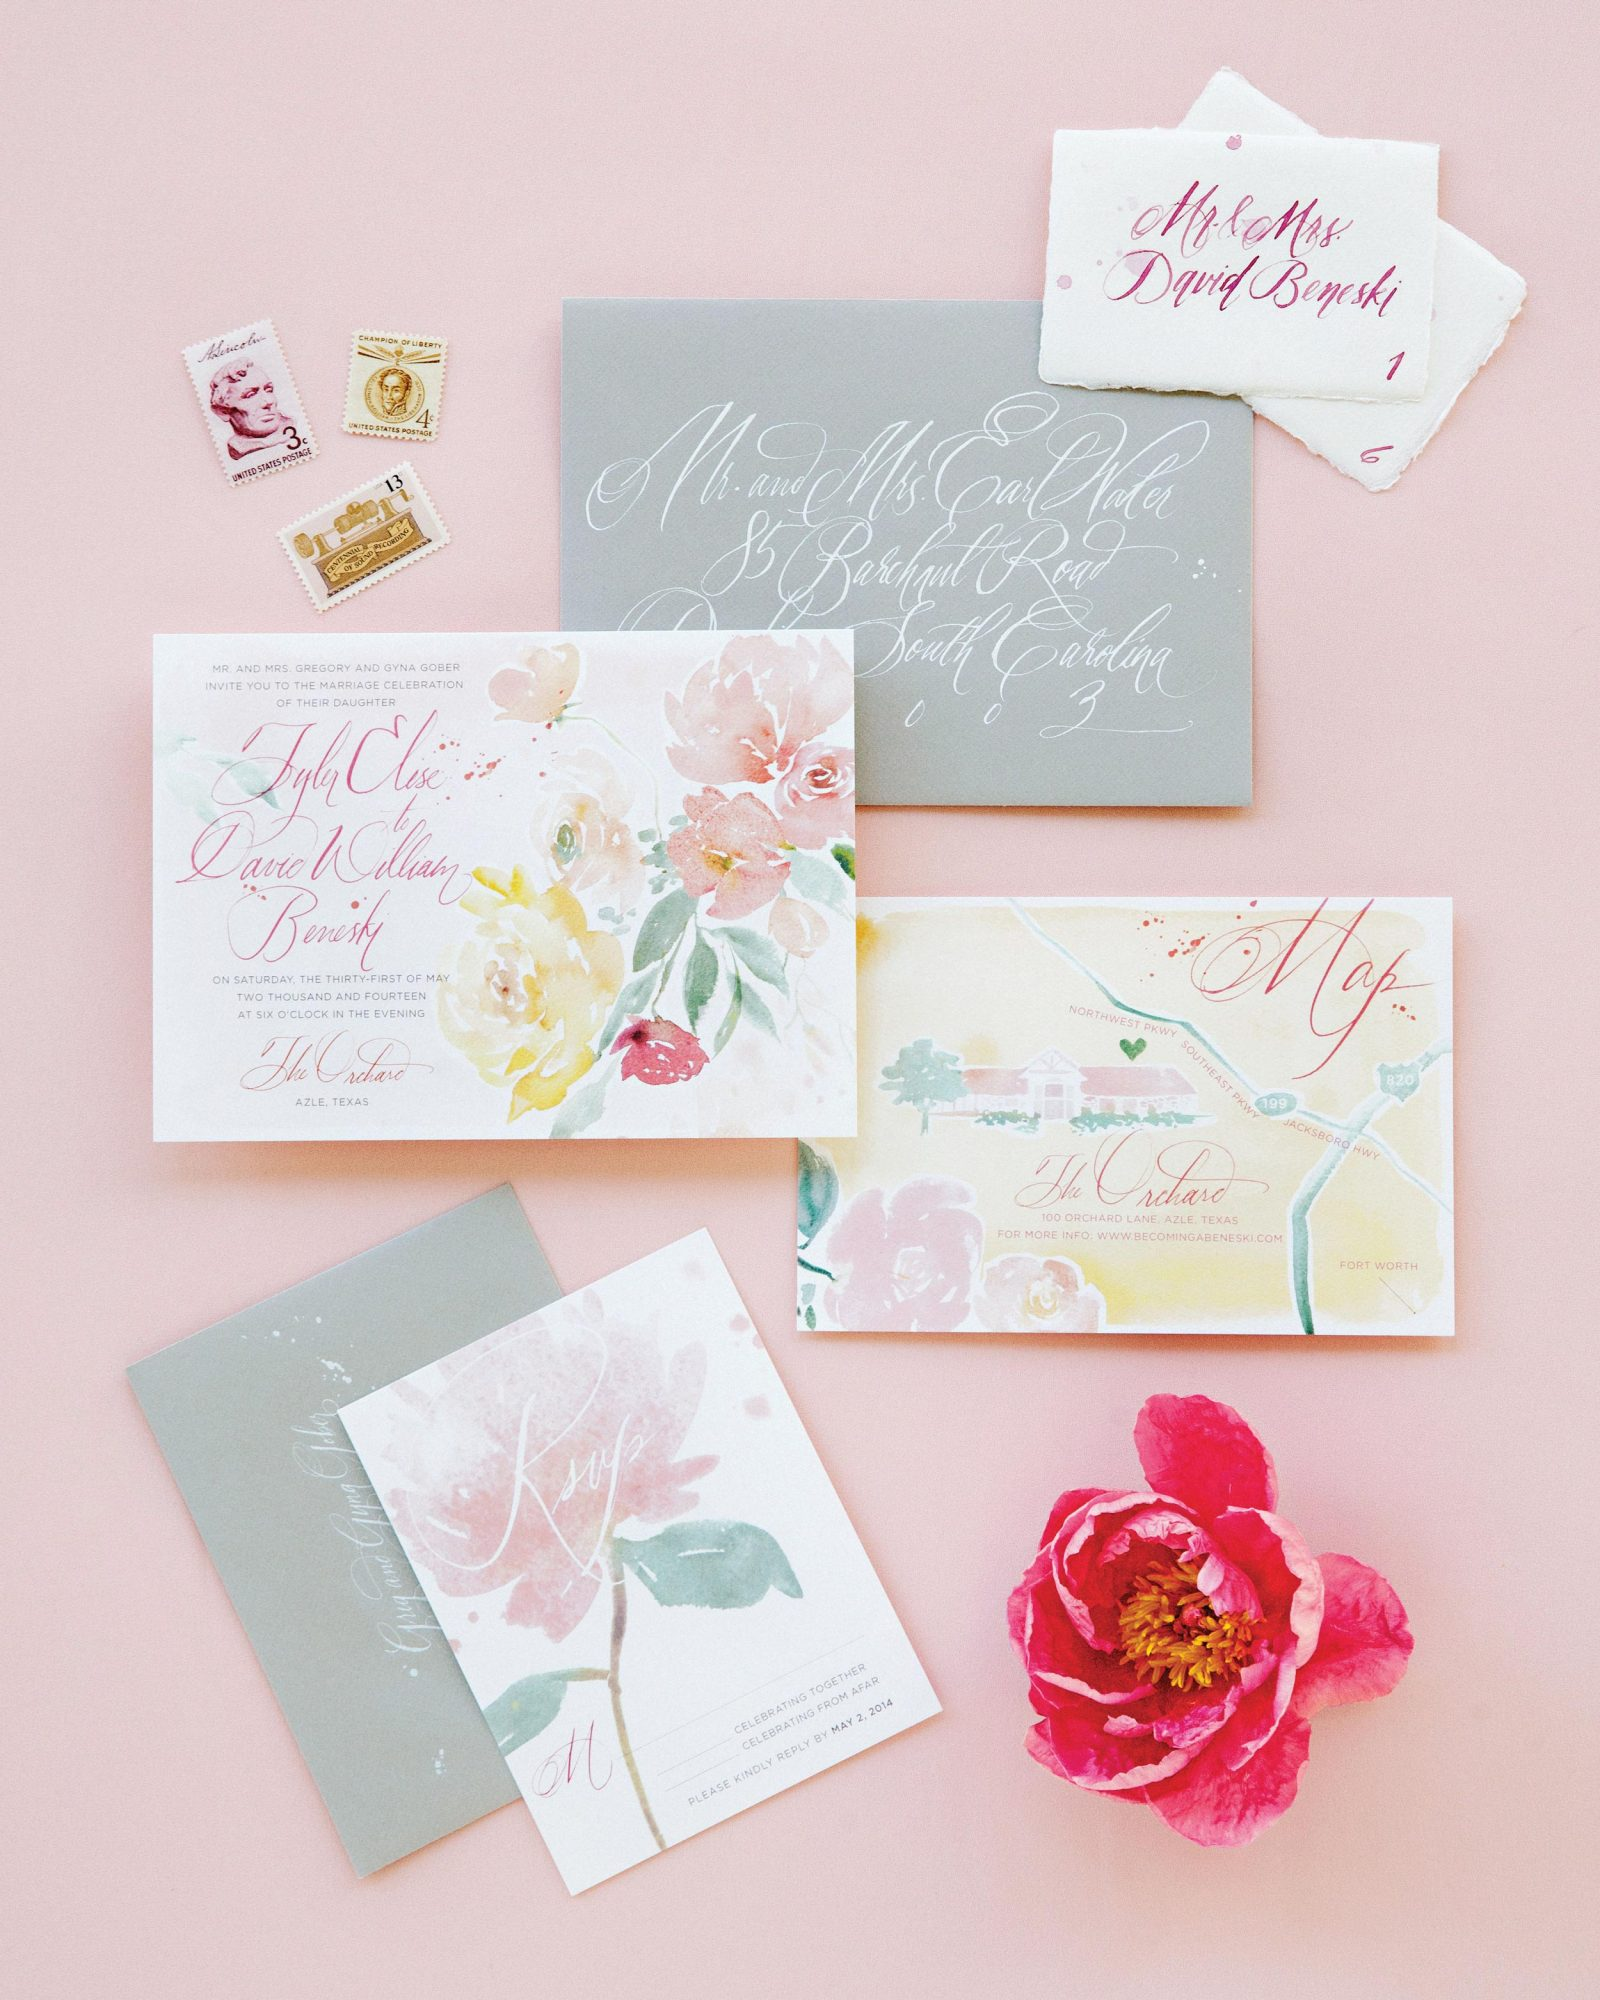 What do you do if people add guests to RSVP cards?